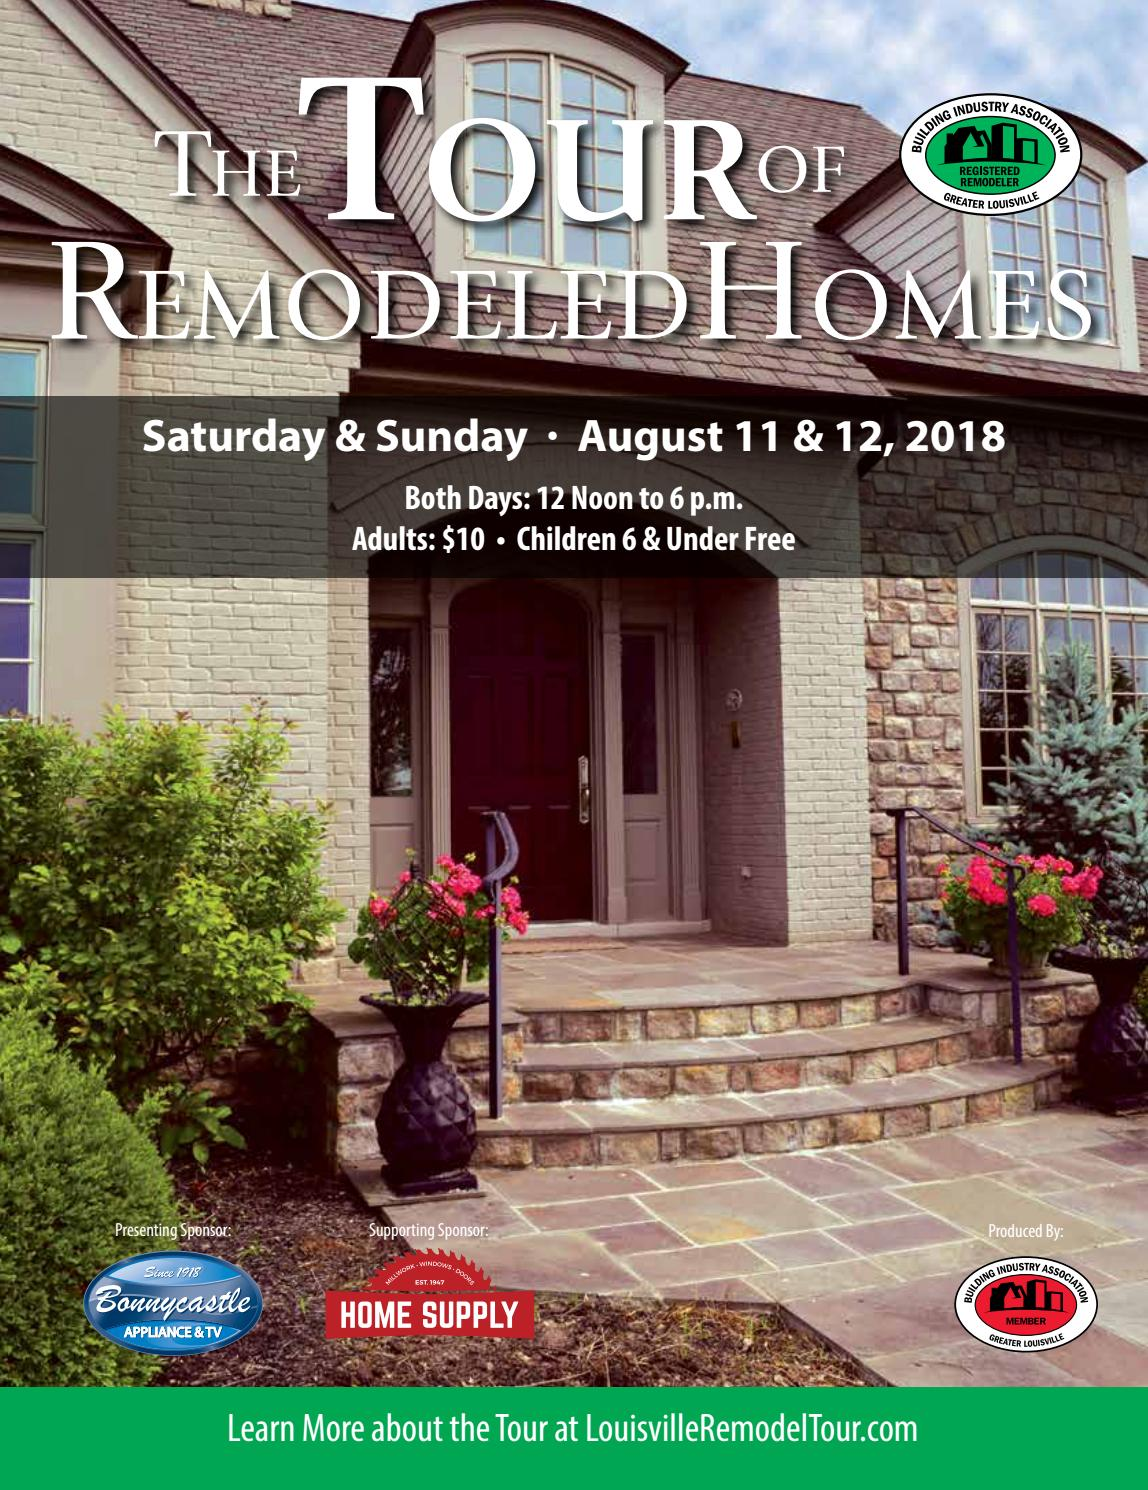 2018 tour of remodeled homes by